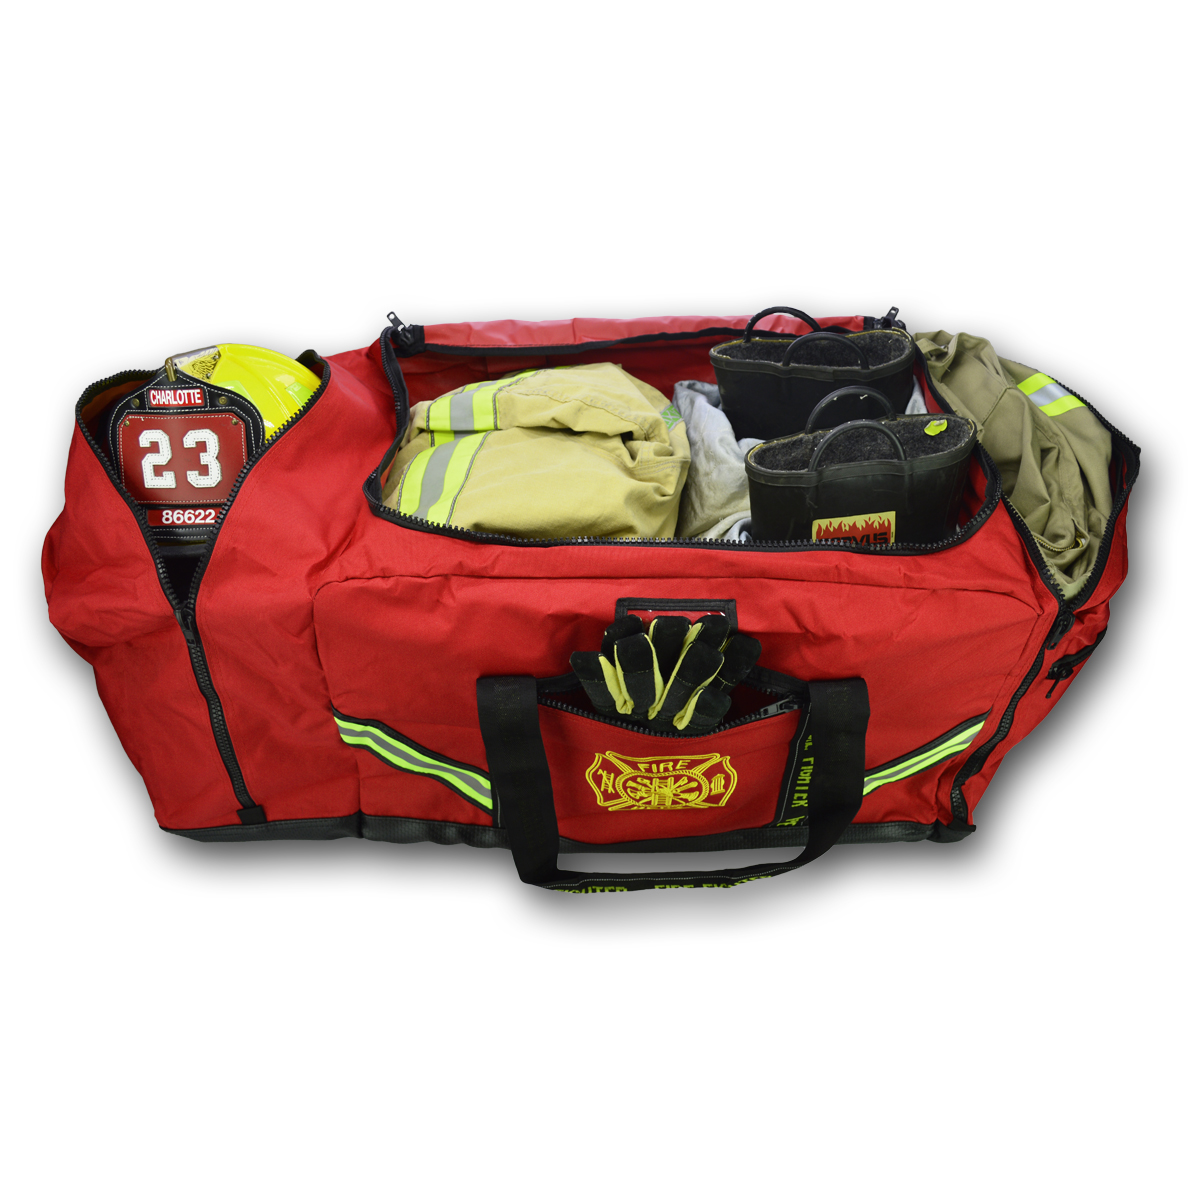 3XL Premium Turnout Gear Bag-Derks Uniforms